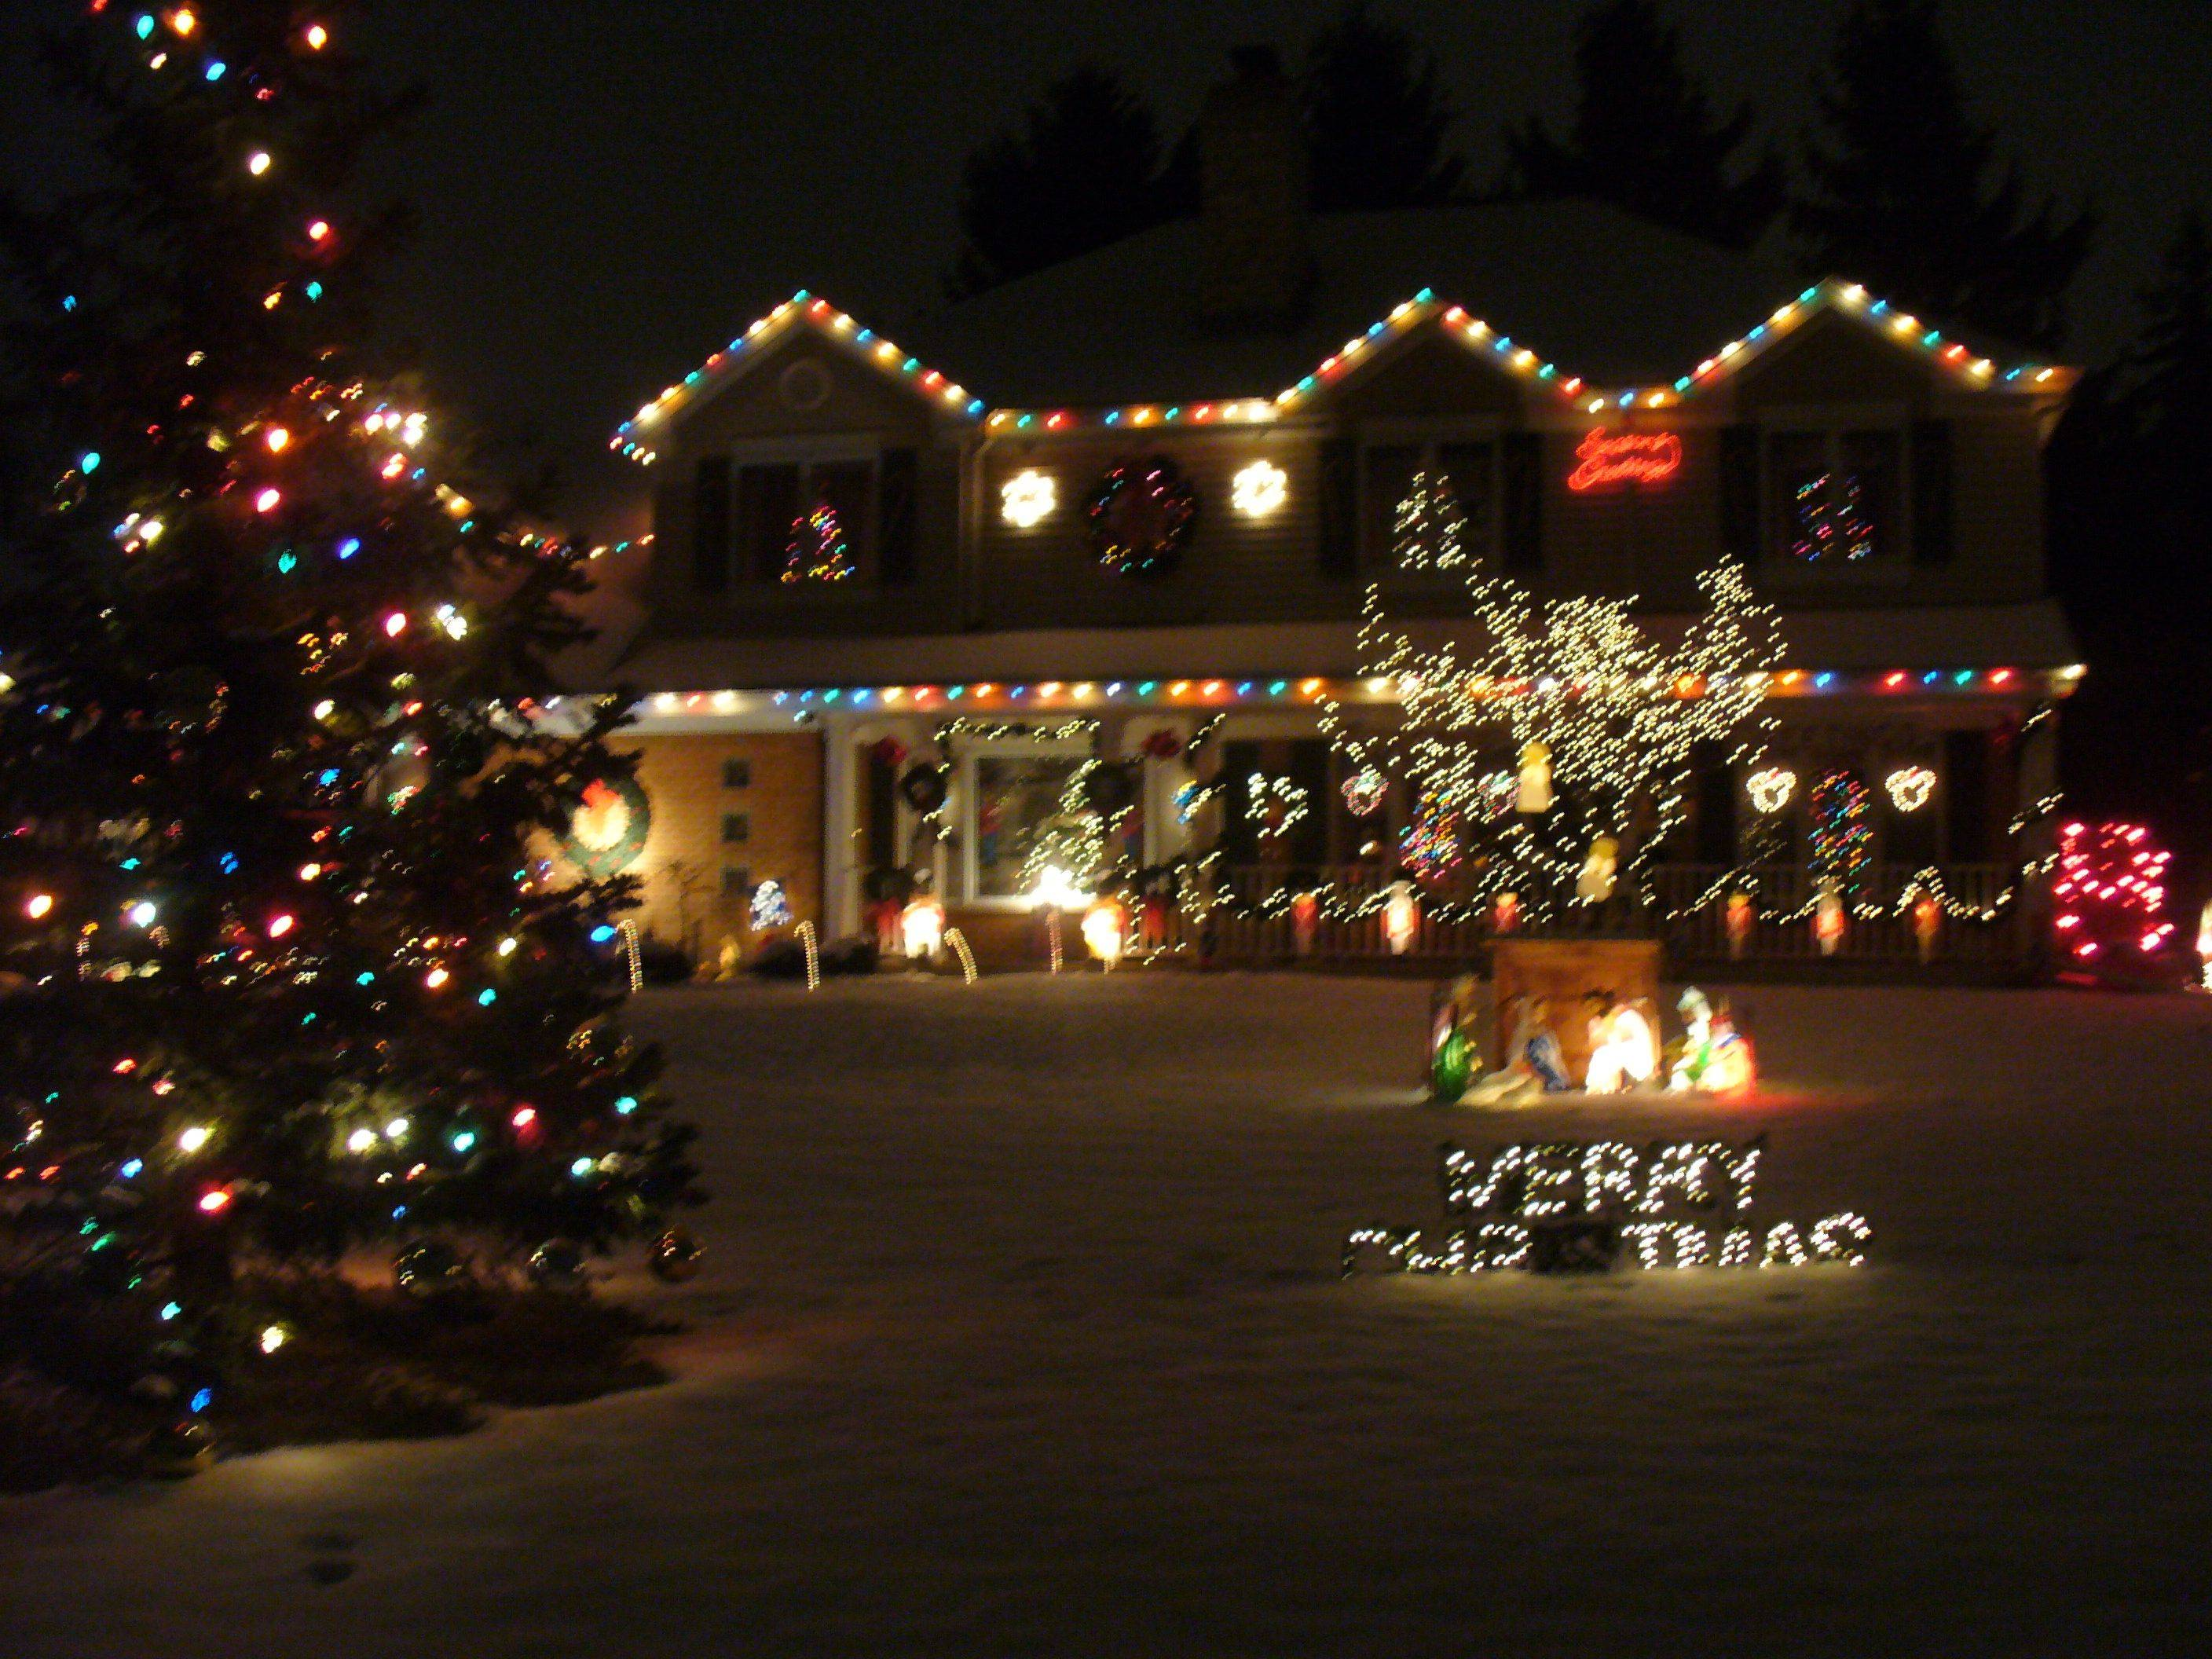 It's truly a Winter wonderland at Marianne and Doug Winter's home at 1521 Dun Lo Drive in Arlington Heights.